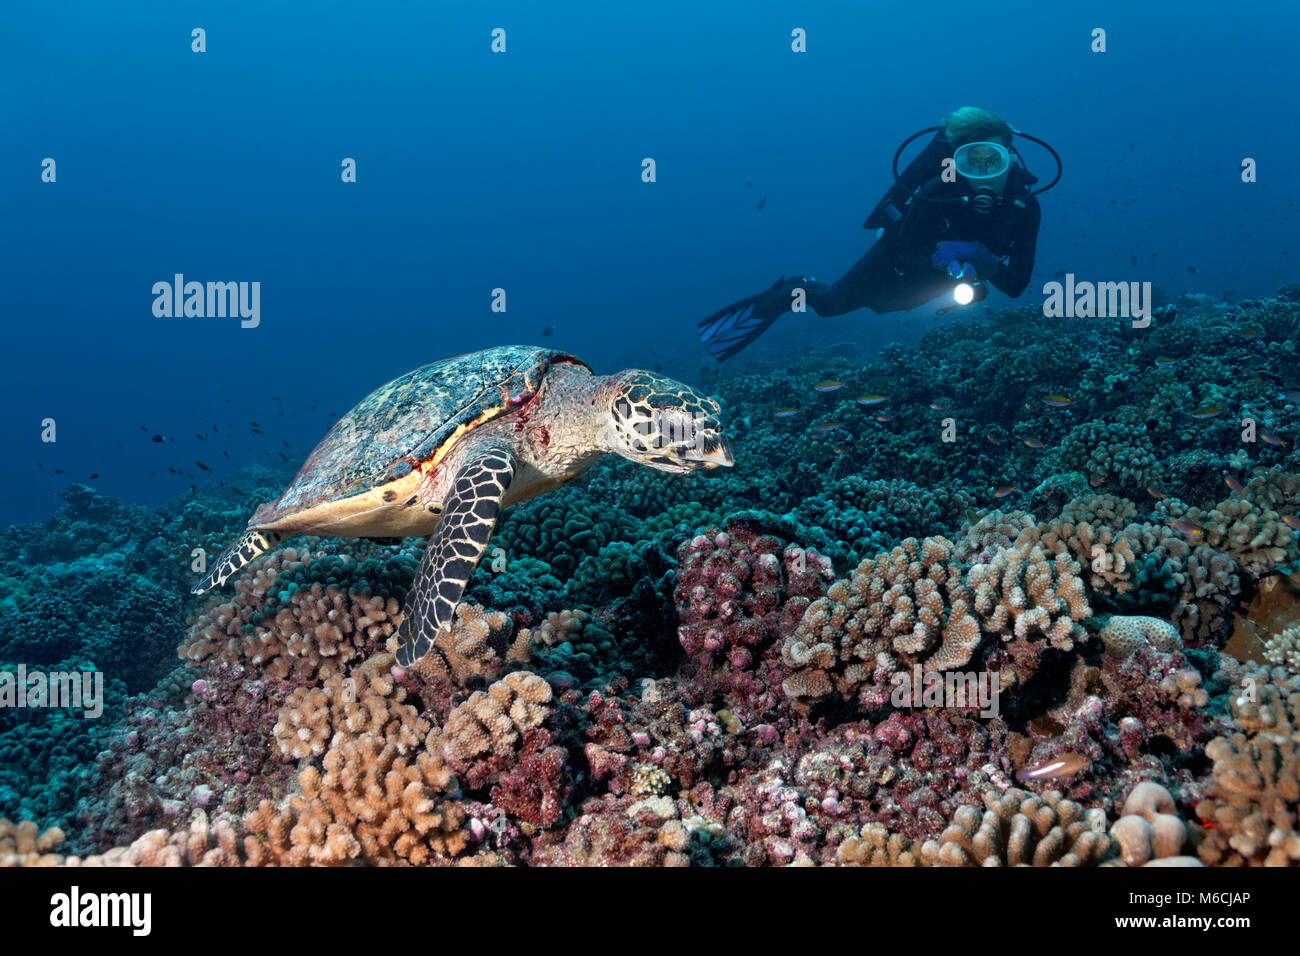 Diver observes Green Sea Turtle (Chelonia mydas) over coral reef with bush corals (Pocillopora), Pacific Ocean, Stock Photo